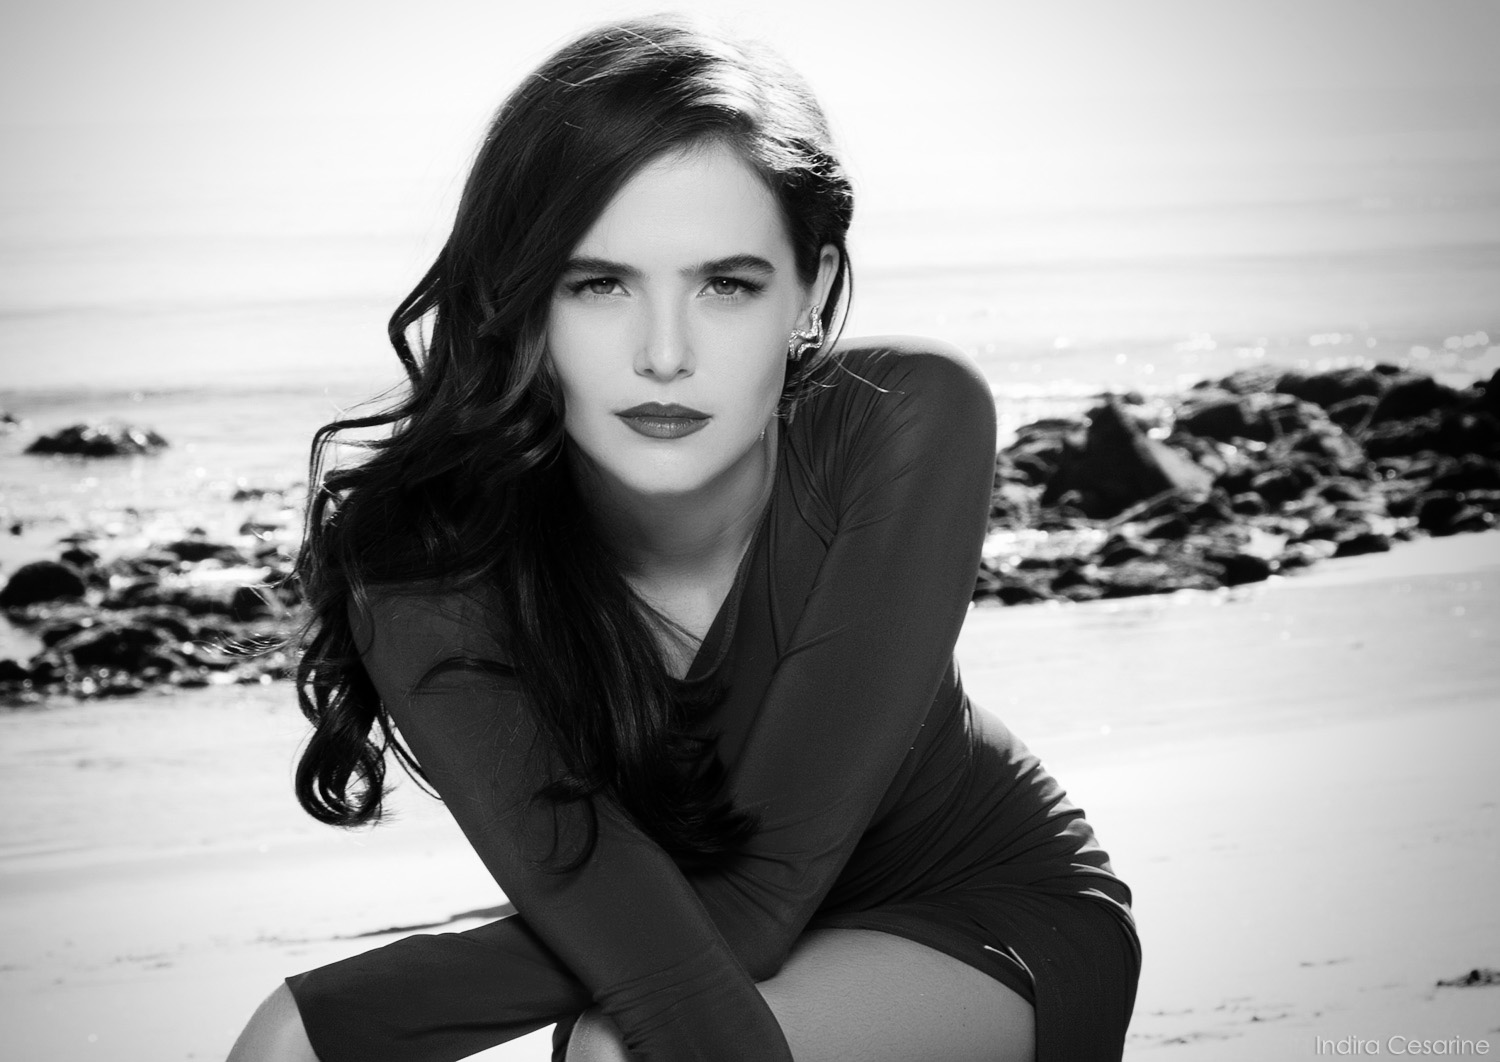 Zoey-Deutch-Photography-by-Indira-Cesarine-012-bw.jpg